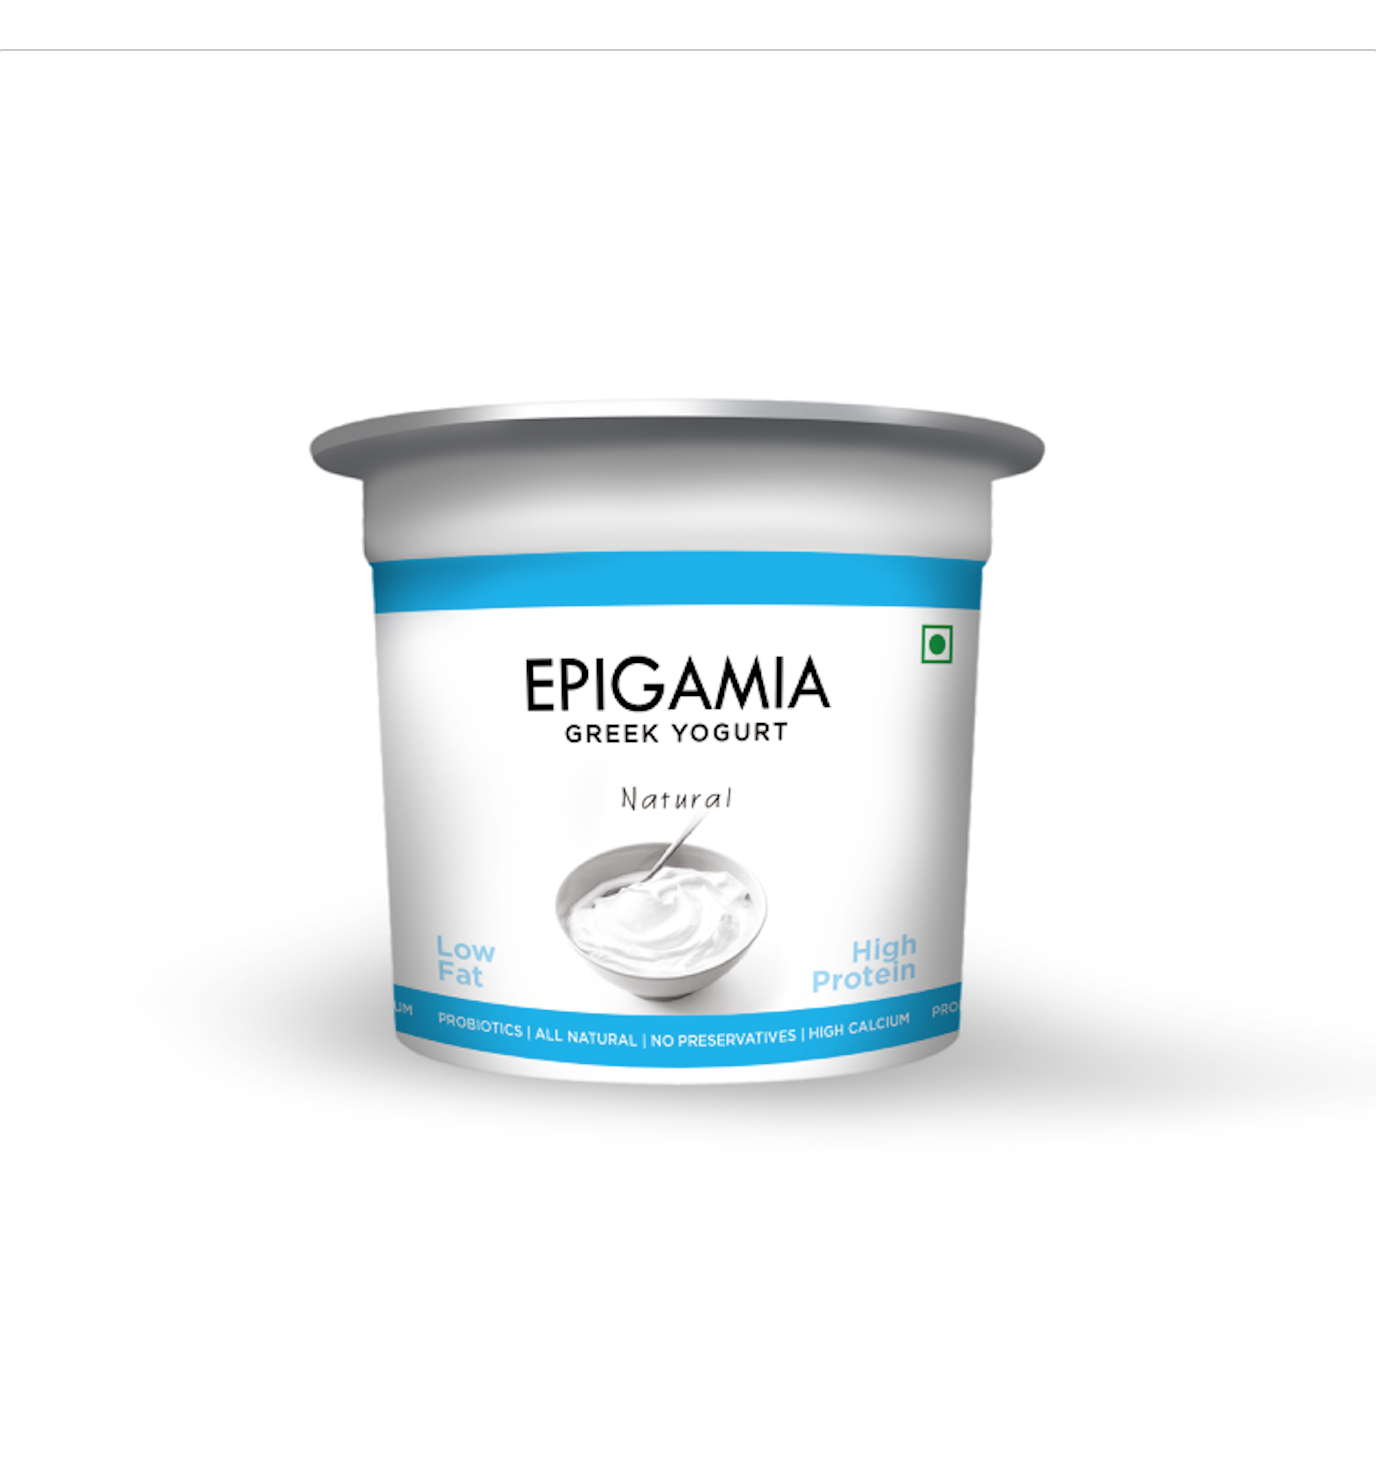 Epigamia Natural Greek Yoghurt Image